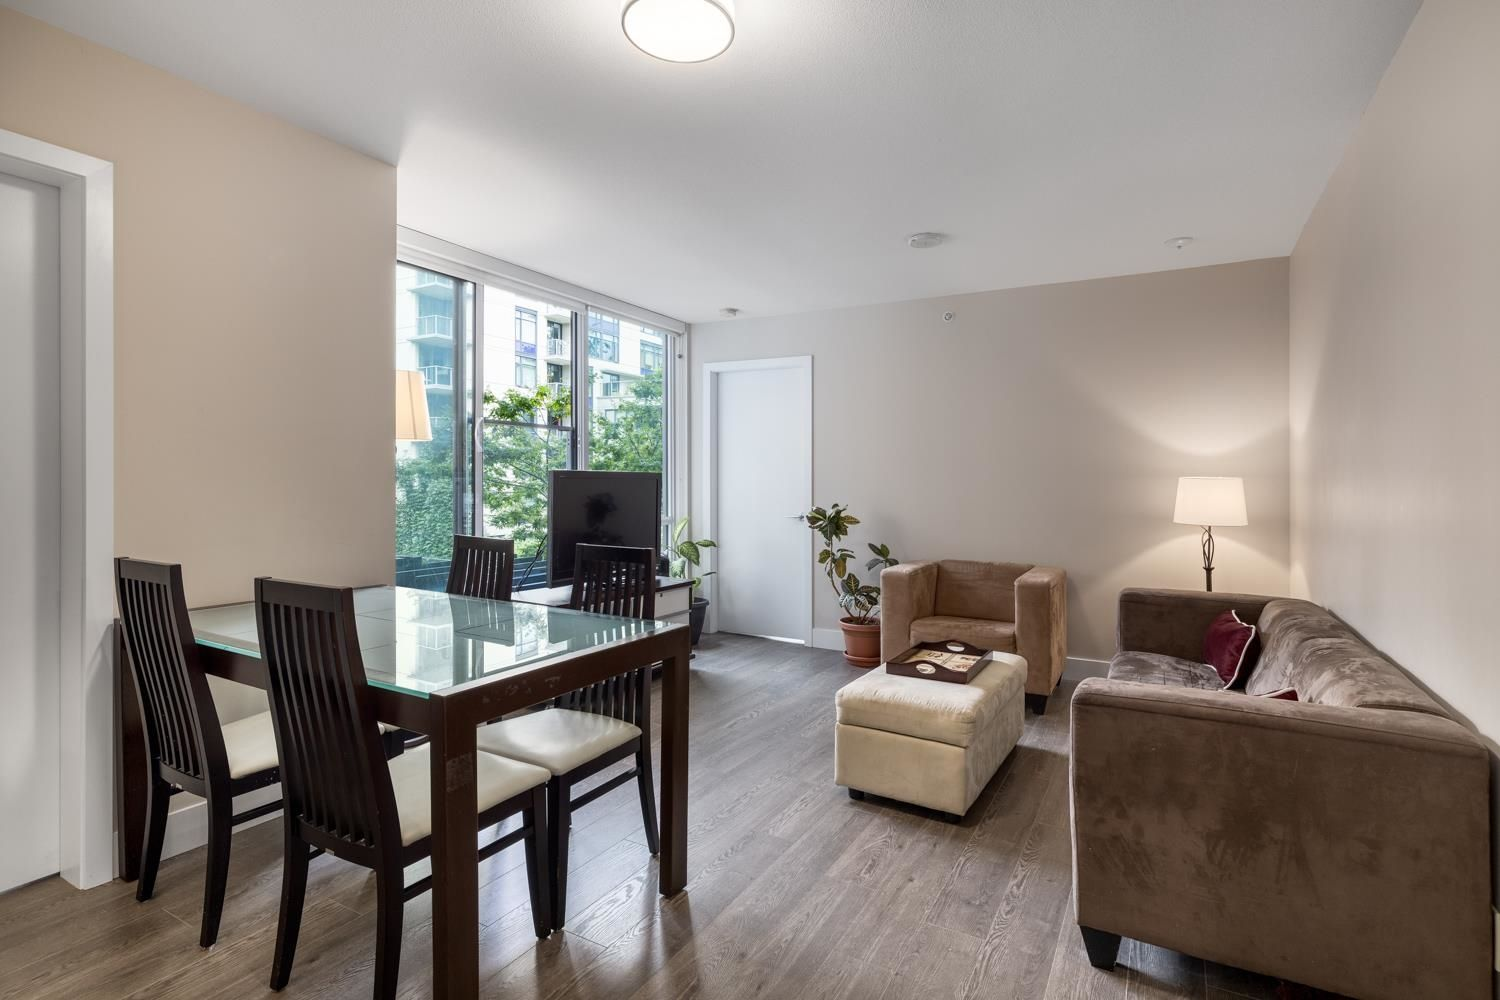 """Main Photo: 328 1783 MANITOBA Street in Vancouver: False Creek Condo for sale in """"Residences at West"""" (Vancouver West)  : MLS®# R2617799"""